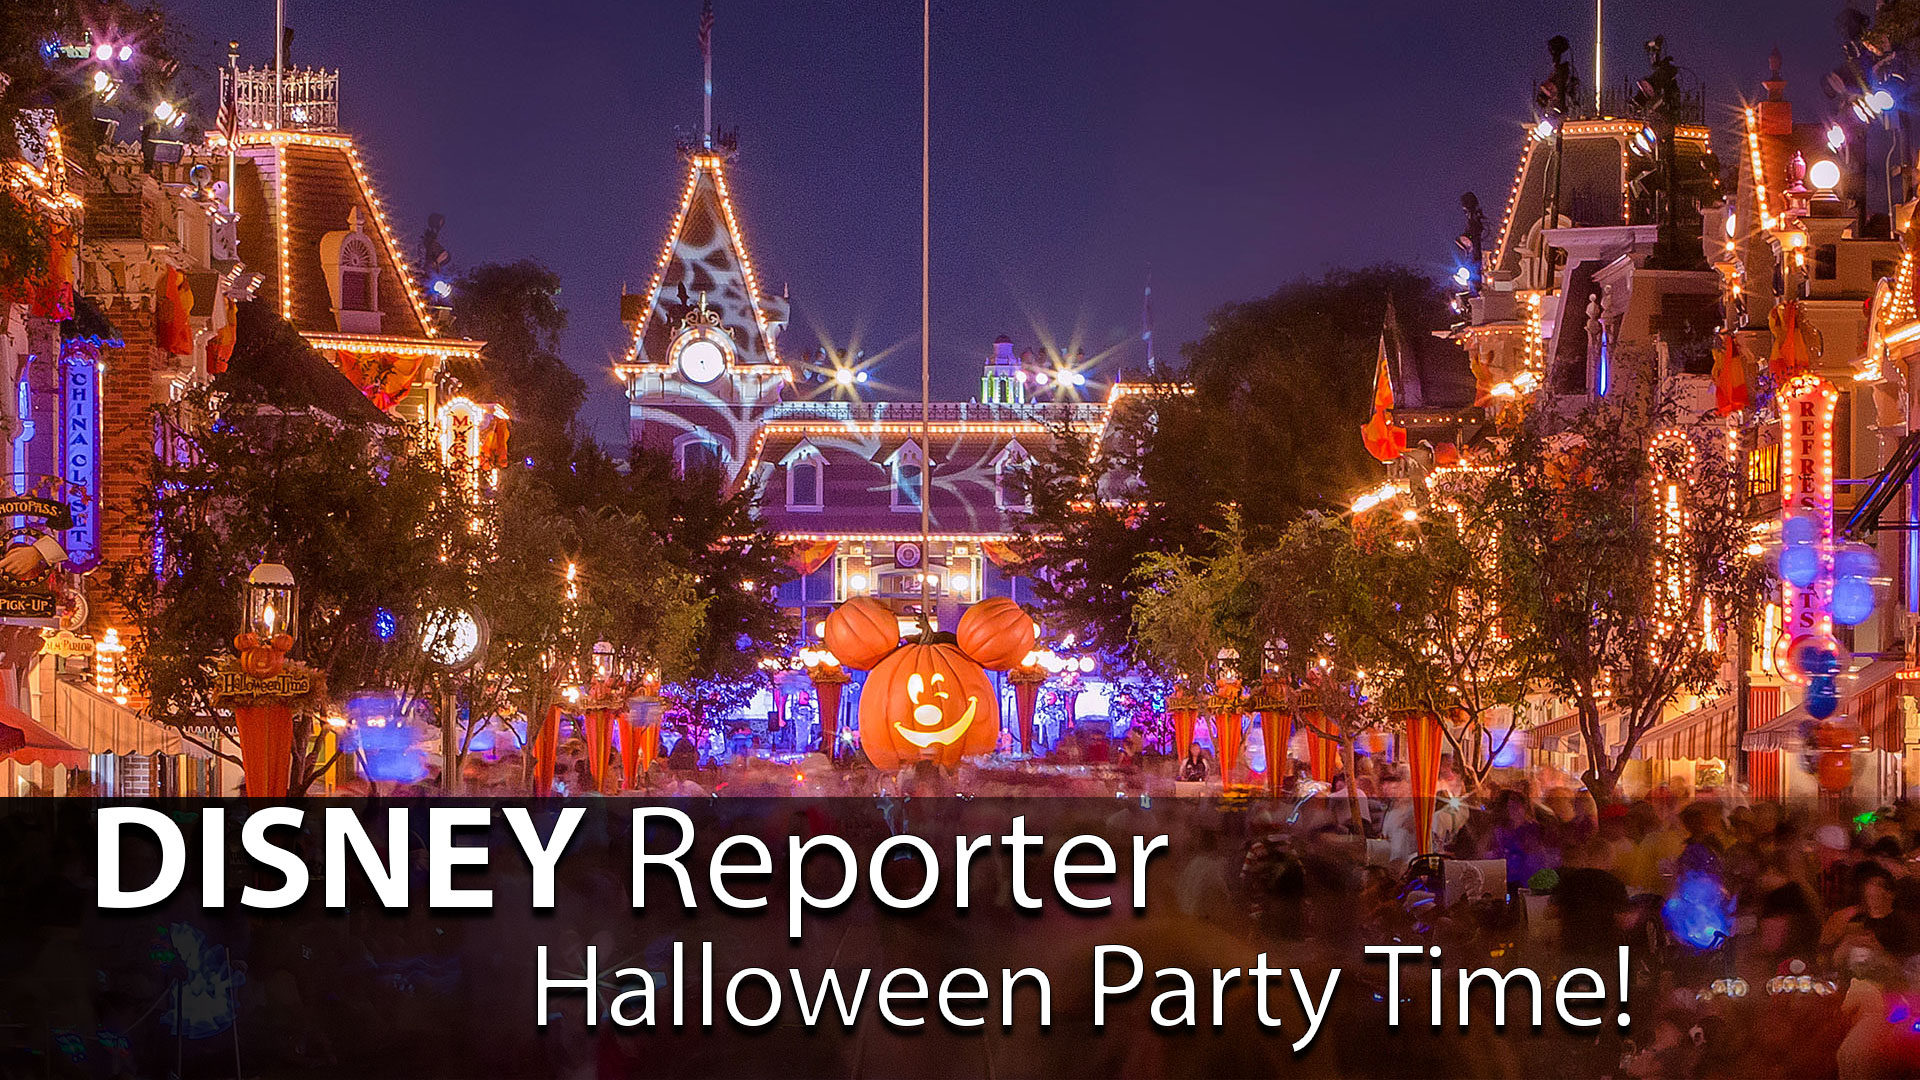 Halloween Party Time! - DISNEY Reporter